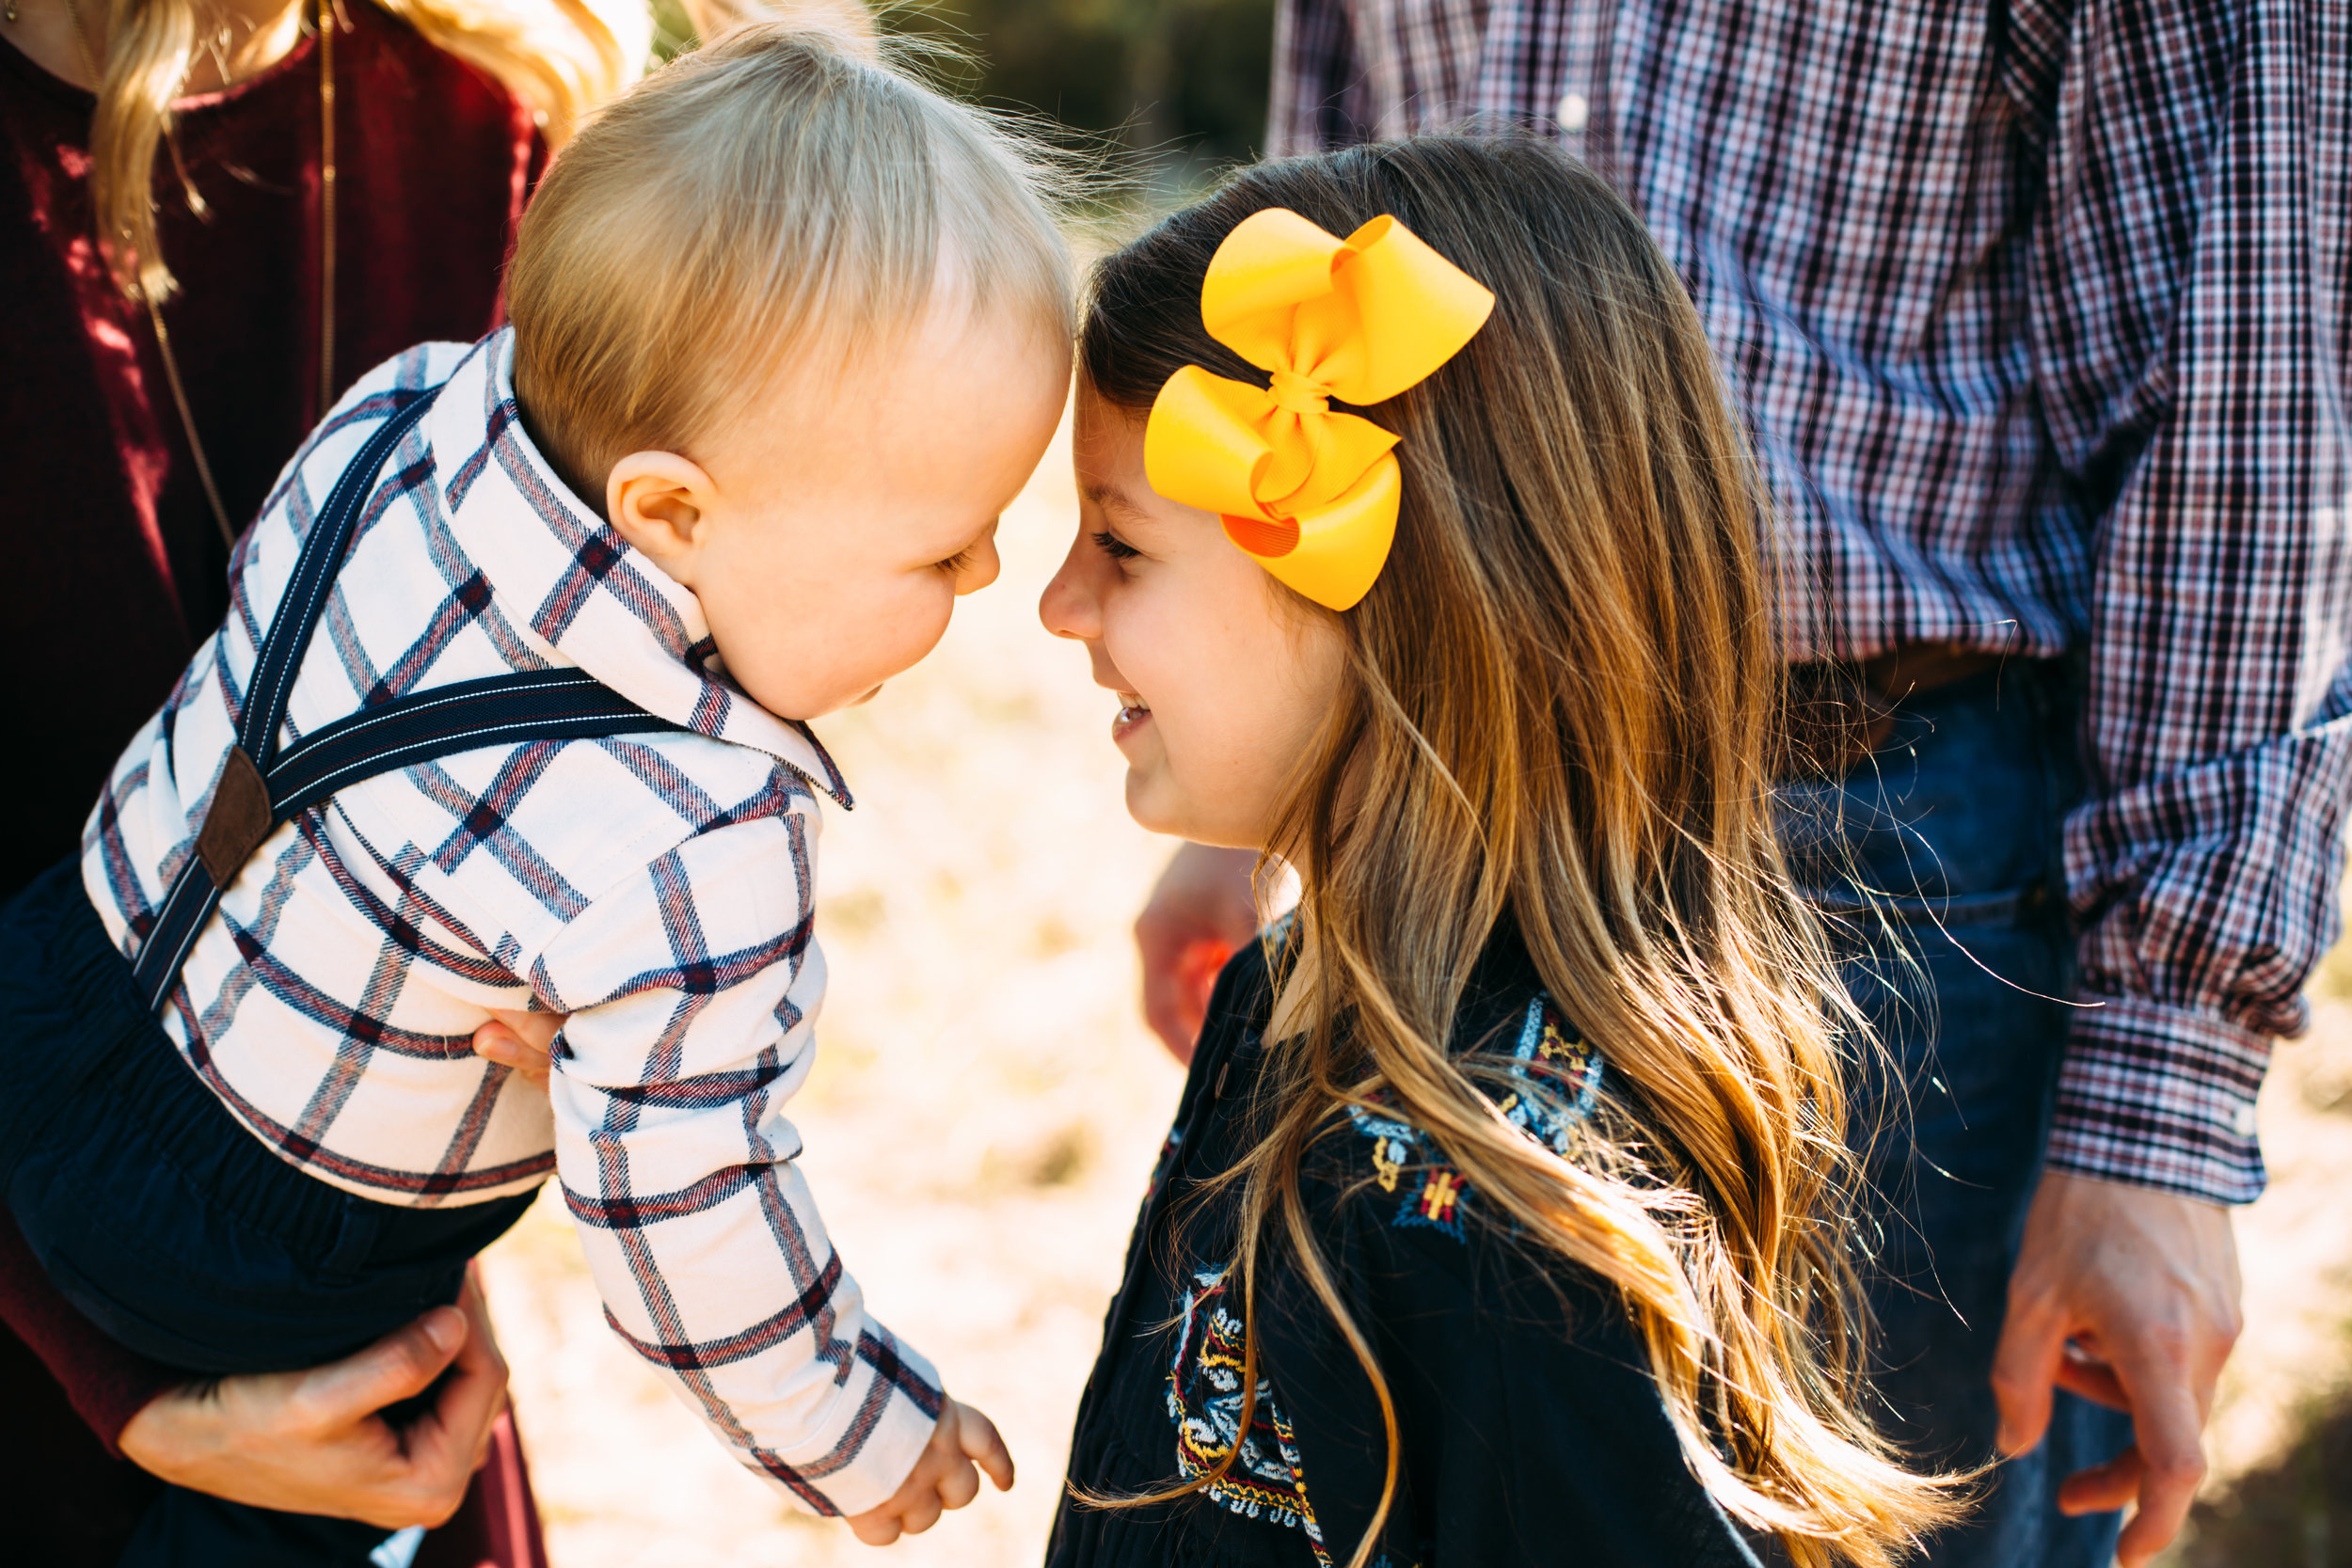 Forehead to forehead these cute kids show their love for each other and accent their yellow bow and suspenders #tealawardphotography #texasfamilyphotographer #amarillophotographer #amarillofamilyphotographer #lifestylephotography #emotionalphotography #familyphotosoot #family #lovingsiblings #purejoy #familyphotos #familyphotographer #greatoutdoors